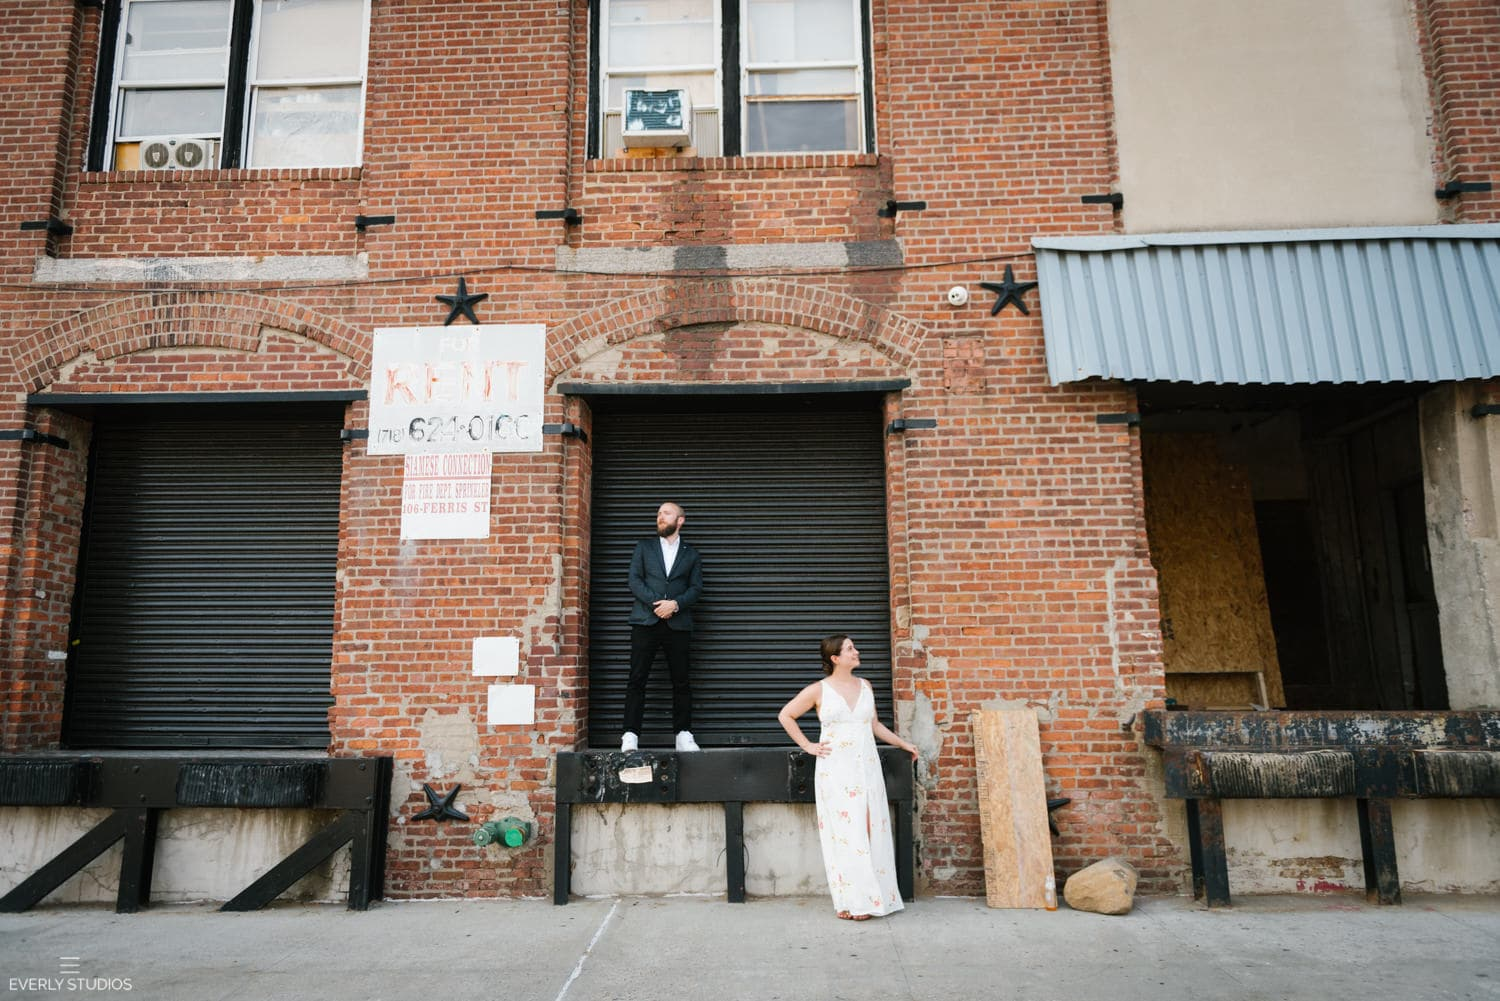 Industrial Red Hook wedding photos in Brooklyn. Photos by Brooklyn wedding photographer Everly Studios, www.everlystudios.com